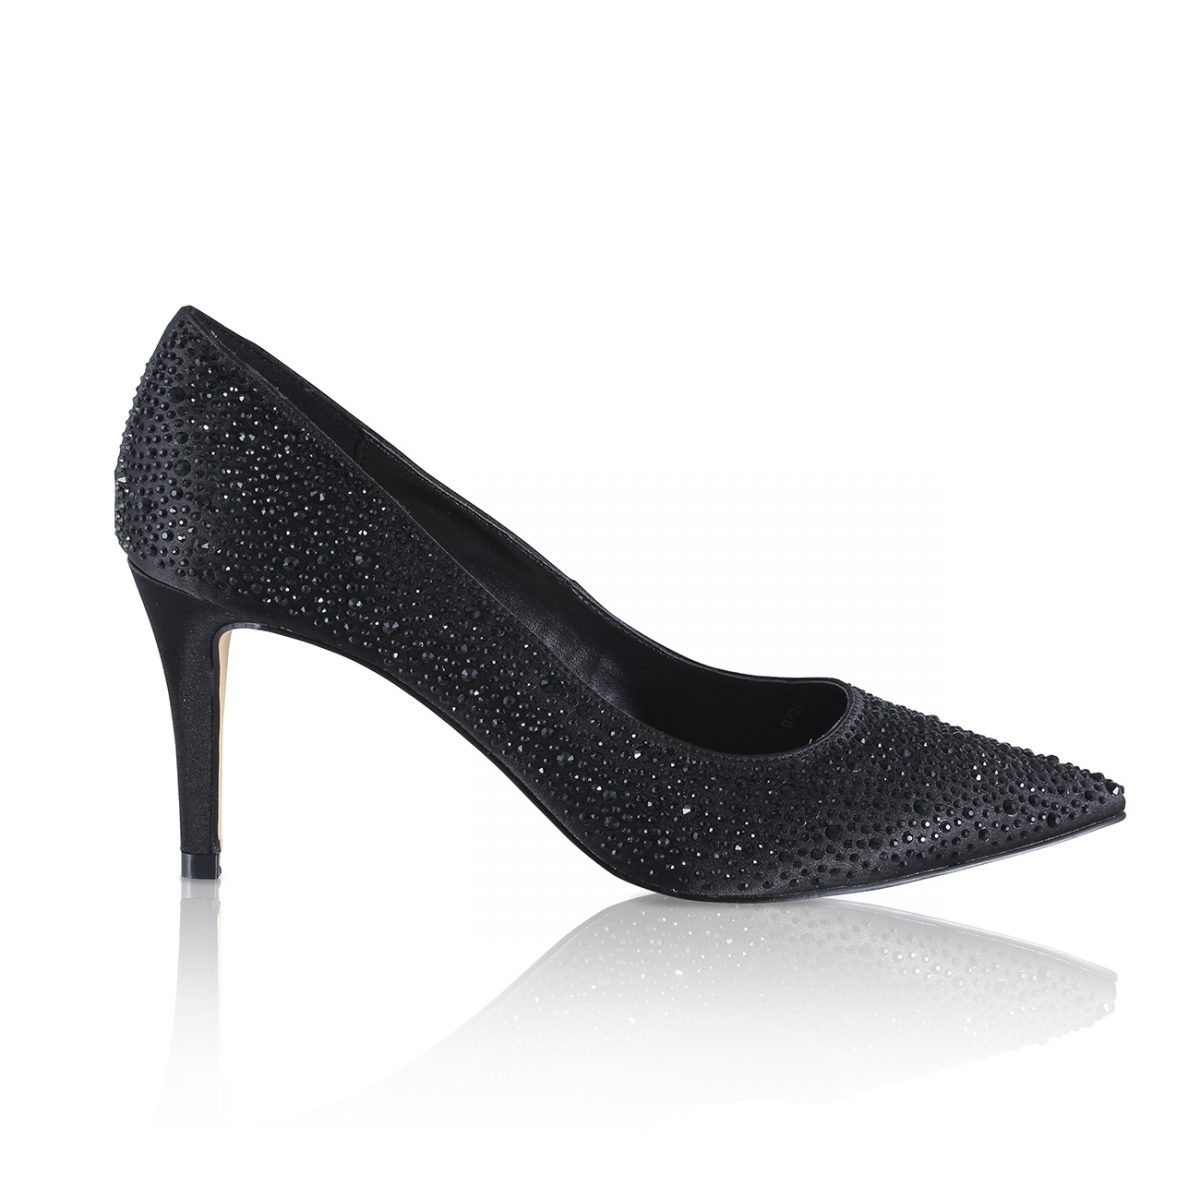 Perfect Bridal Stara Shoes - Crystal Encrusted Black Satin